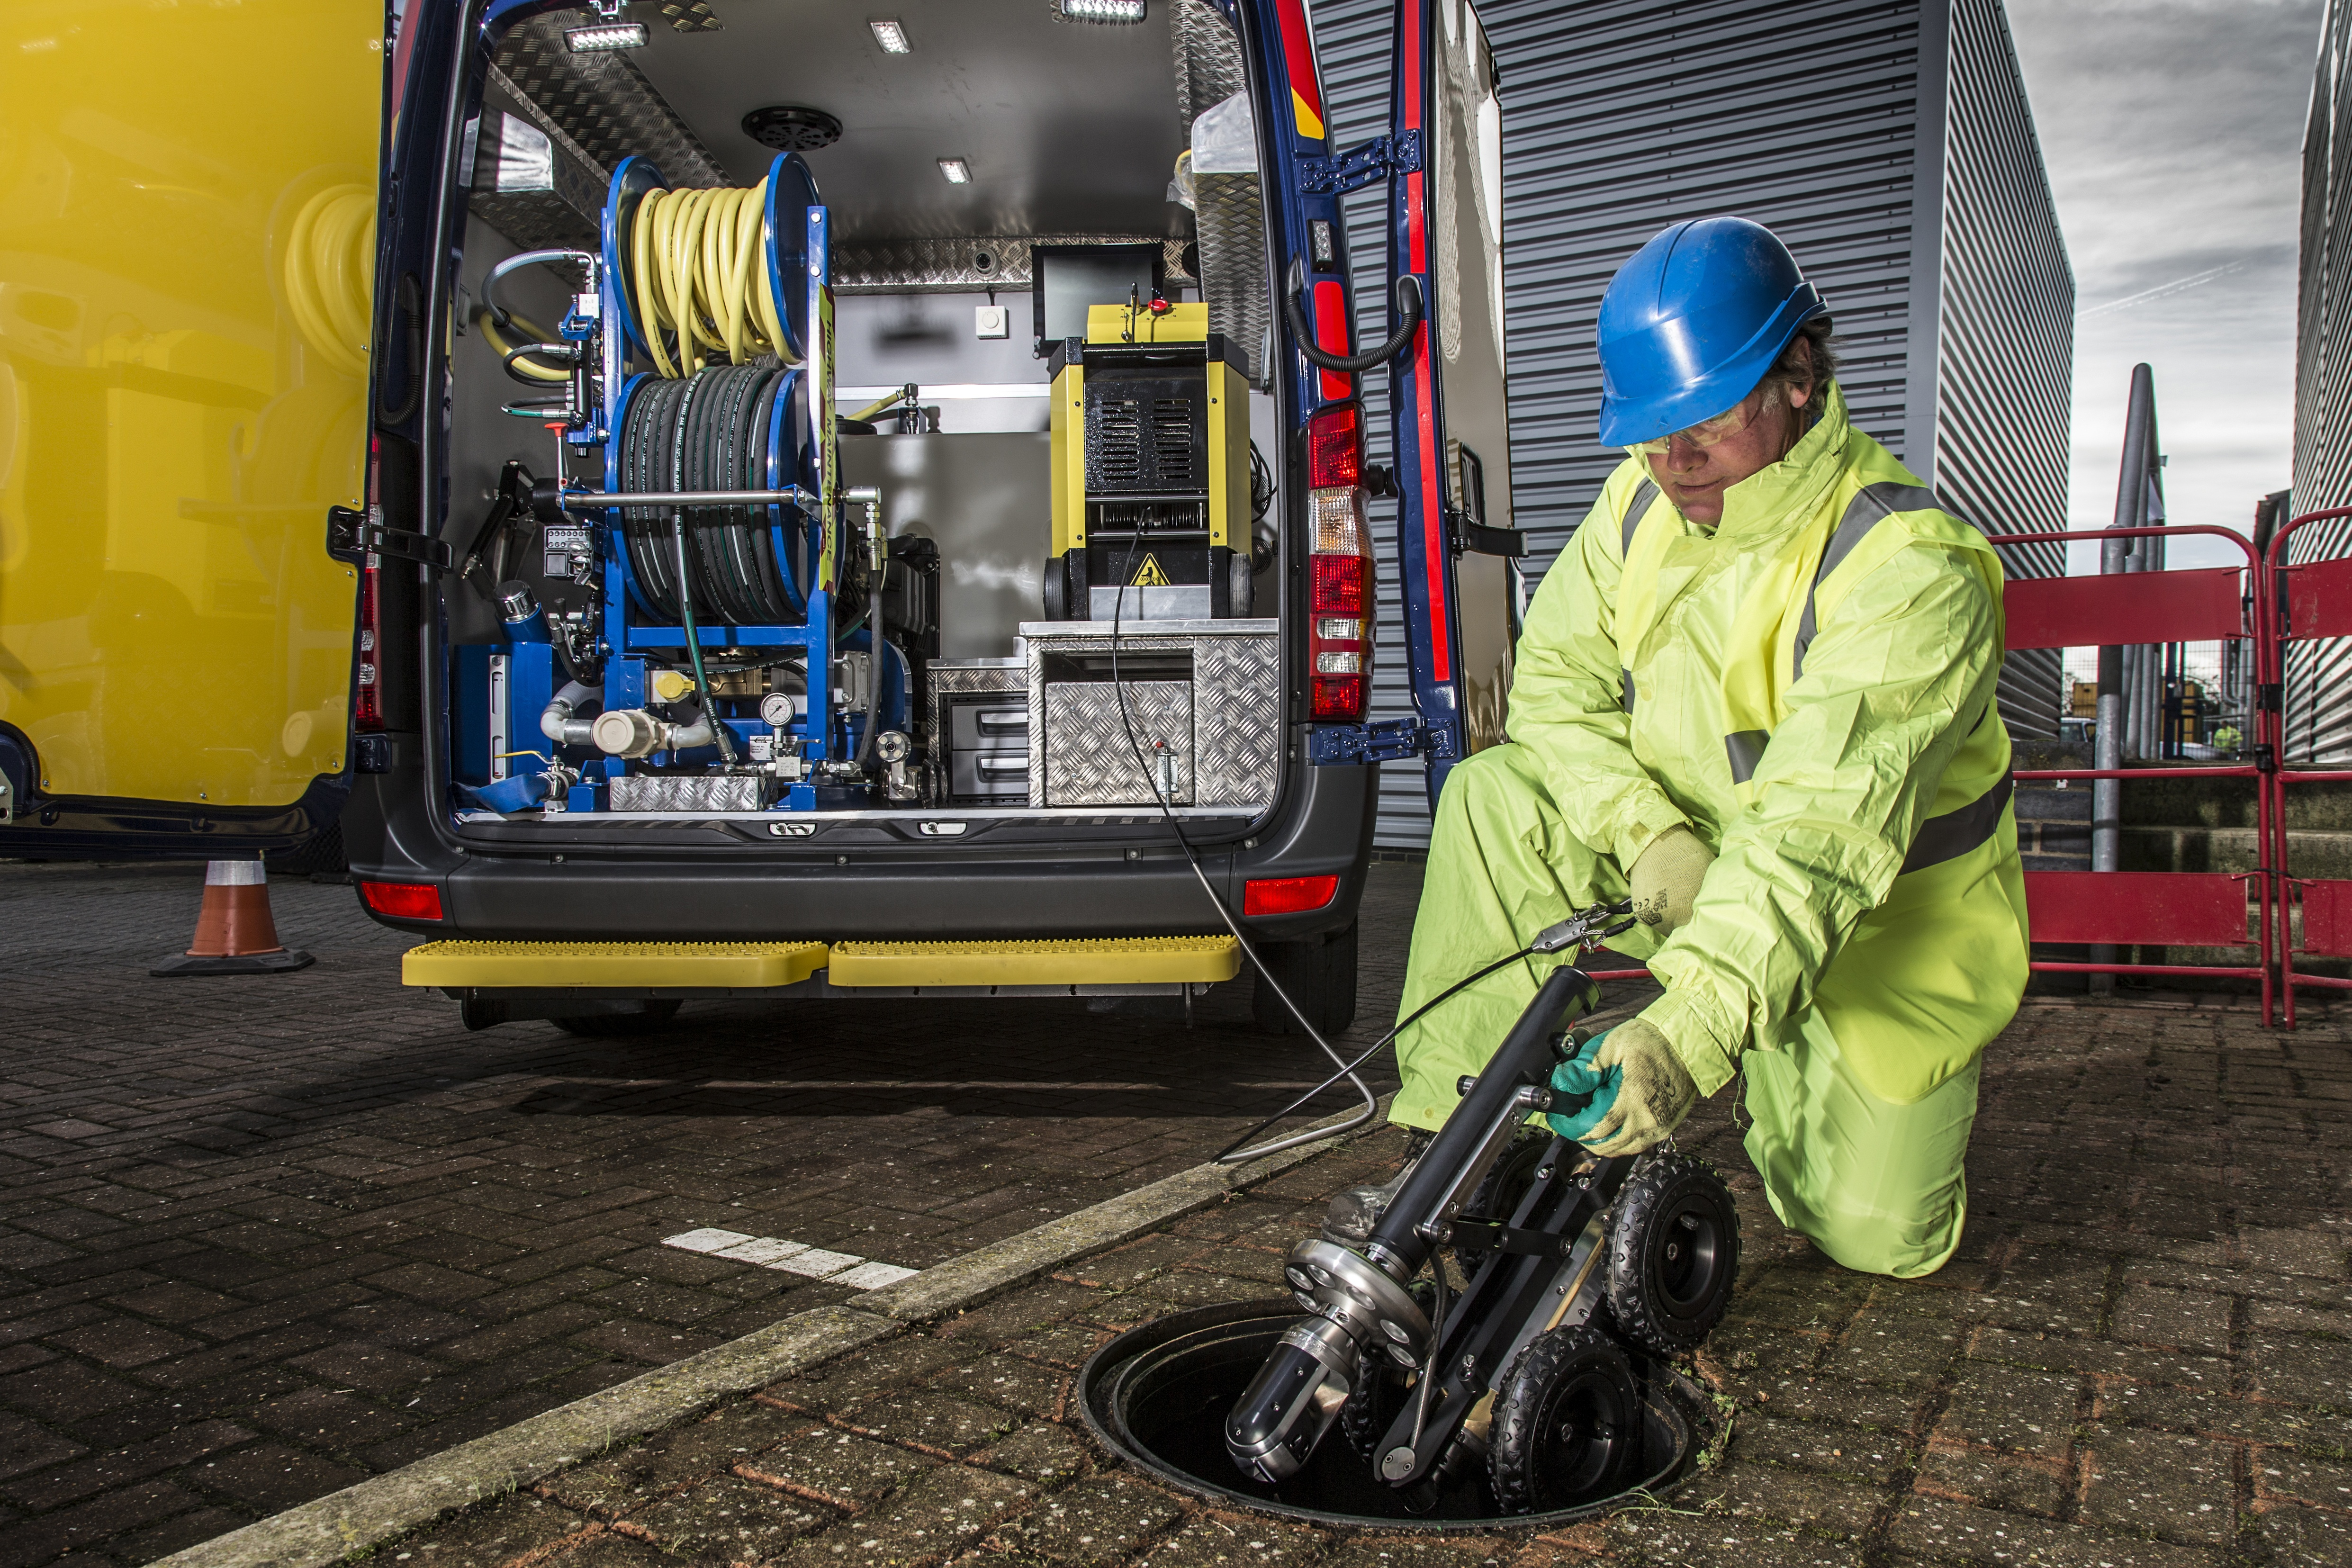 Drainage services business